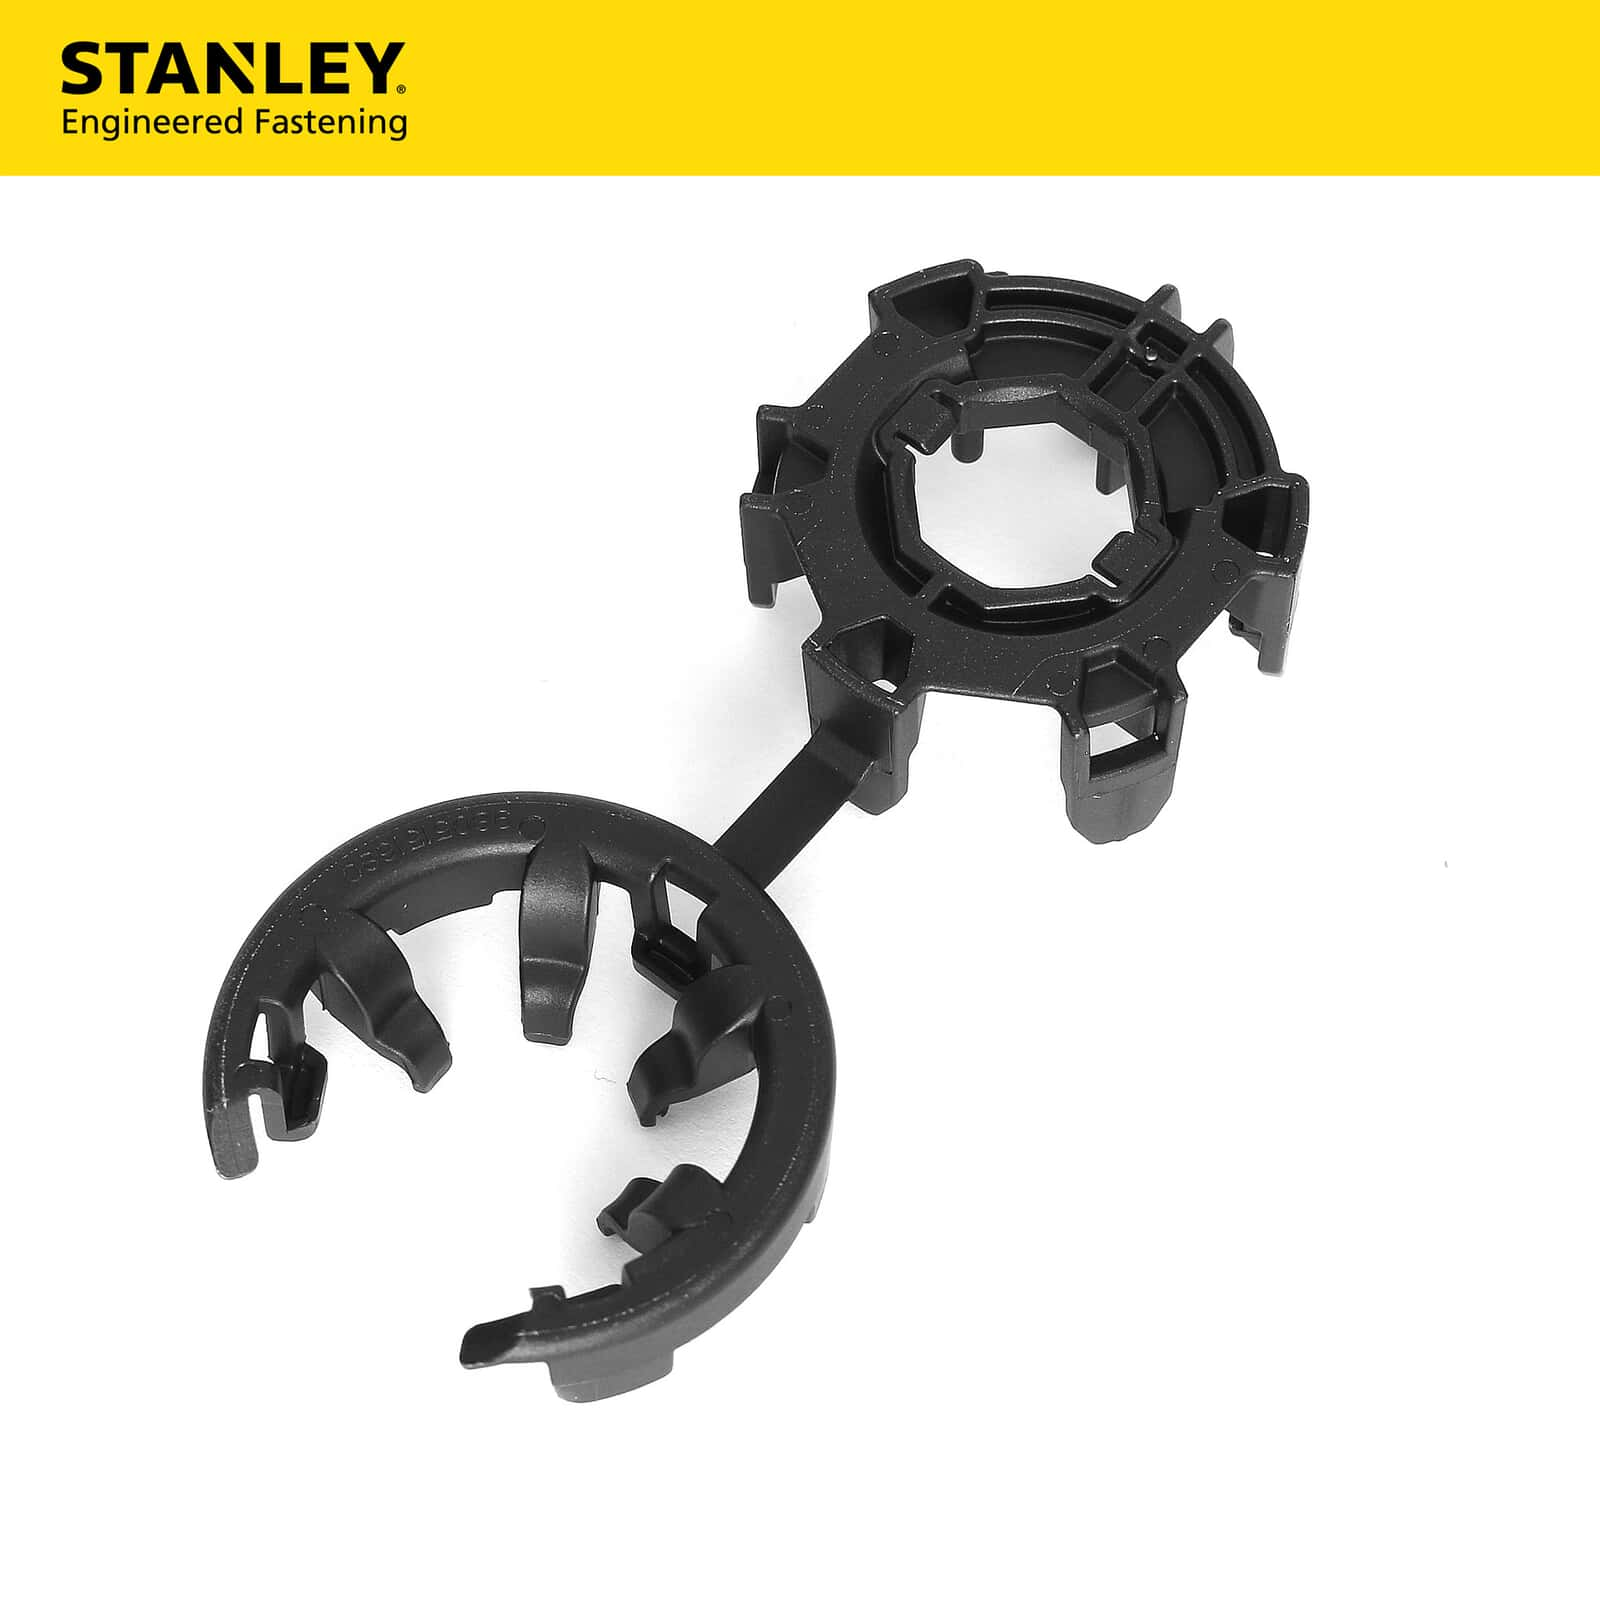 Plastic Anti Rotation Clip For Wire Harness P 6913 Animation Stanley Wiring 2018 Engineered Fastening All Rights Reserved